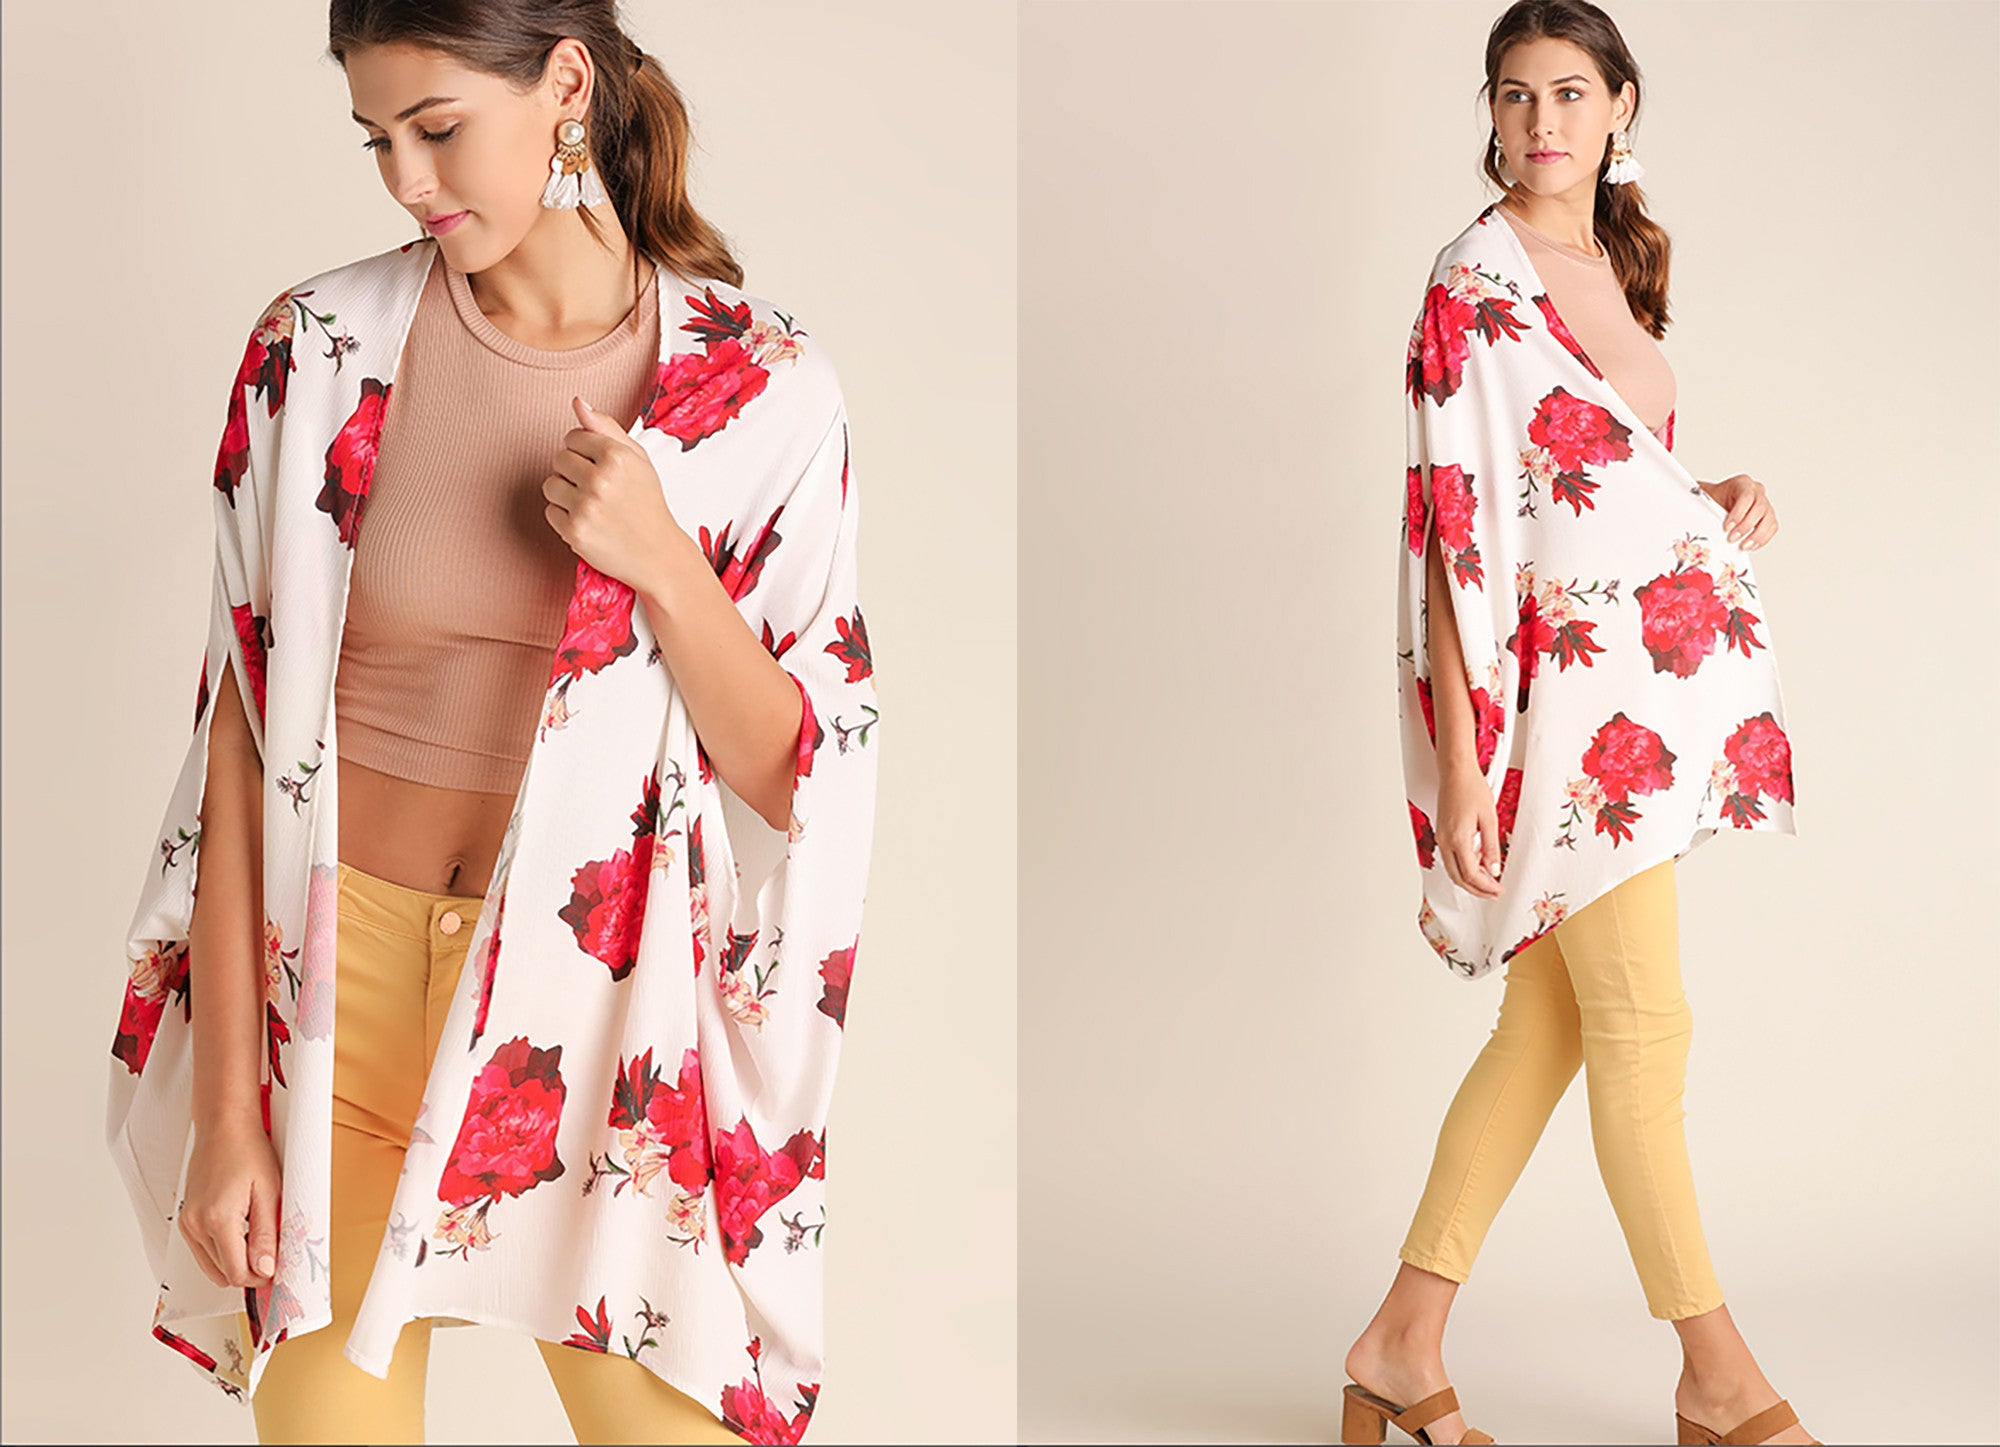 Women's floral print kimono at Eccentrics Boutique. Affordable women's clothing boutique.